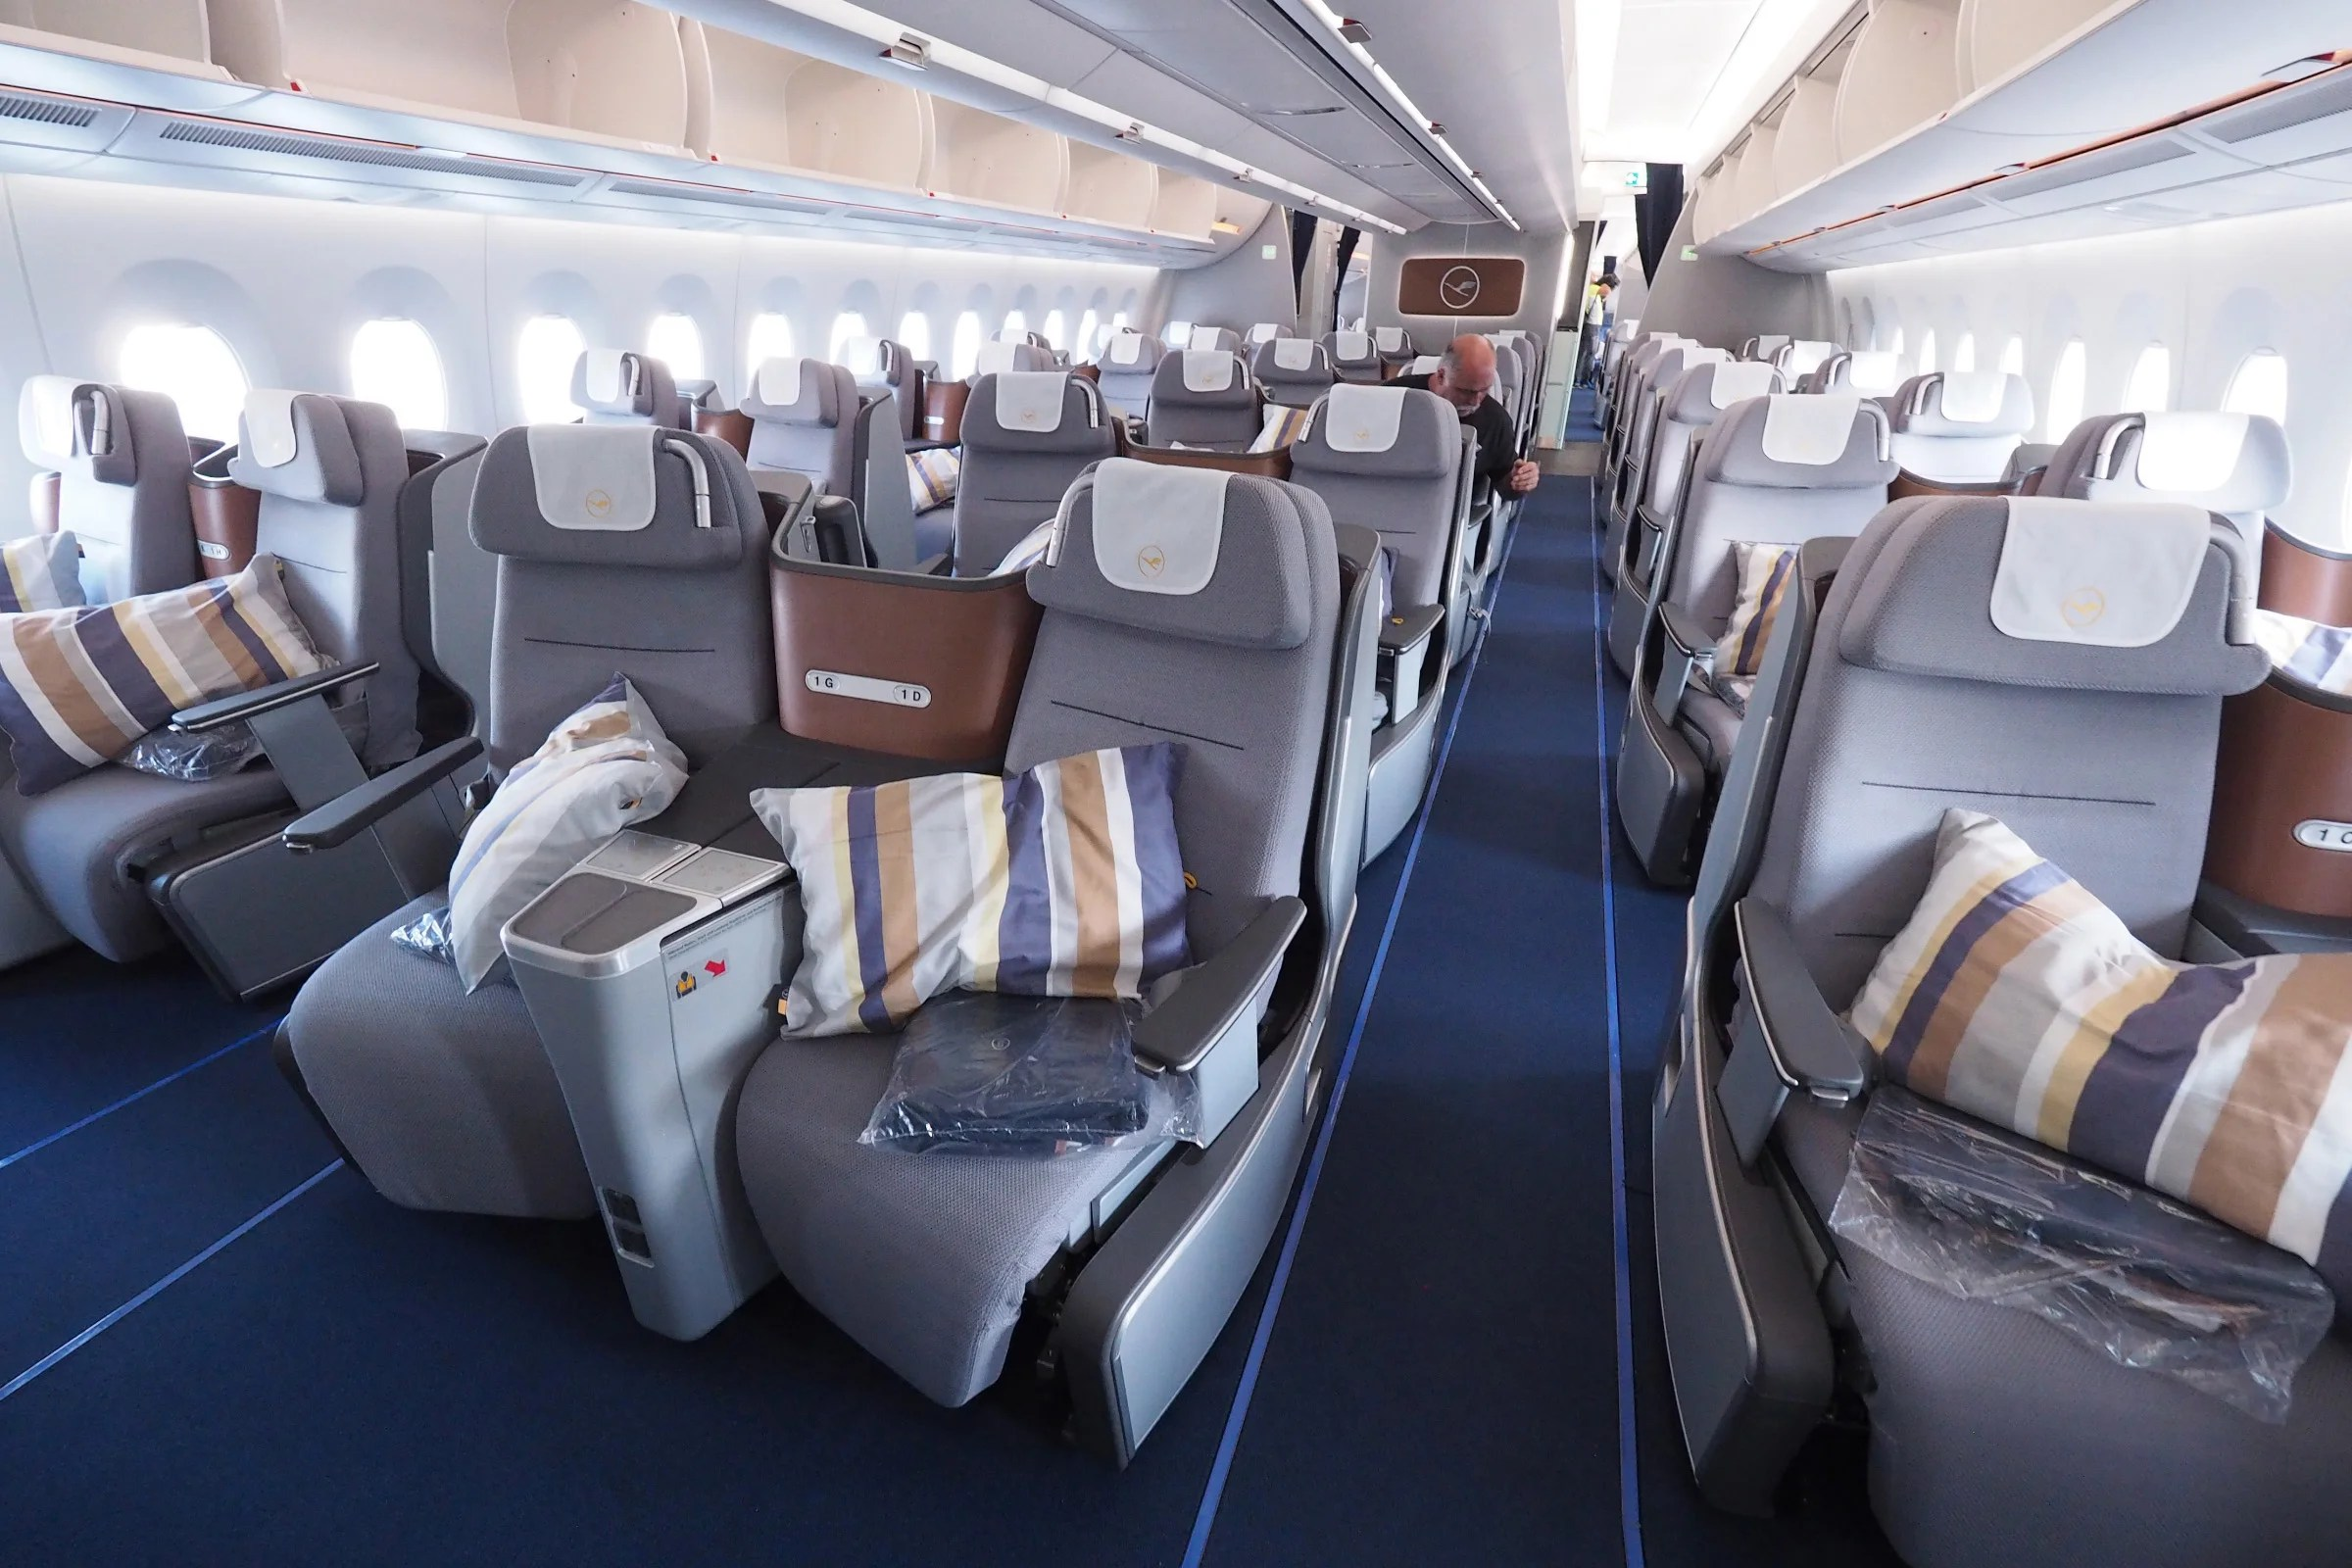 Review: Lufthansa (Airbus A350) Business Class